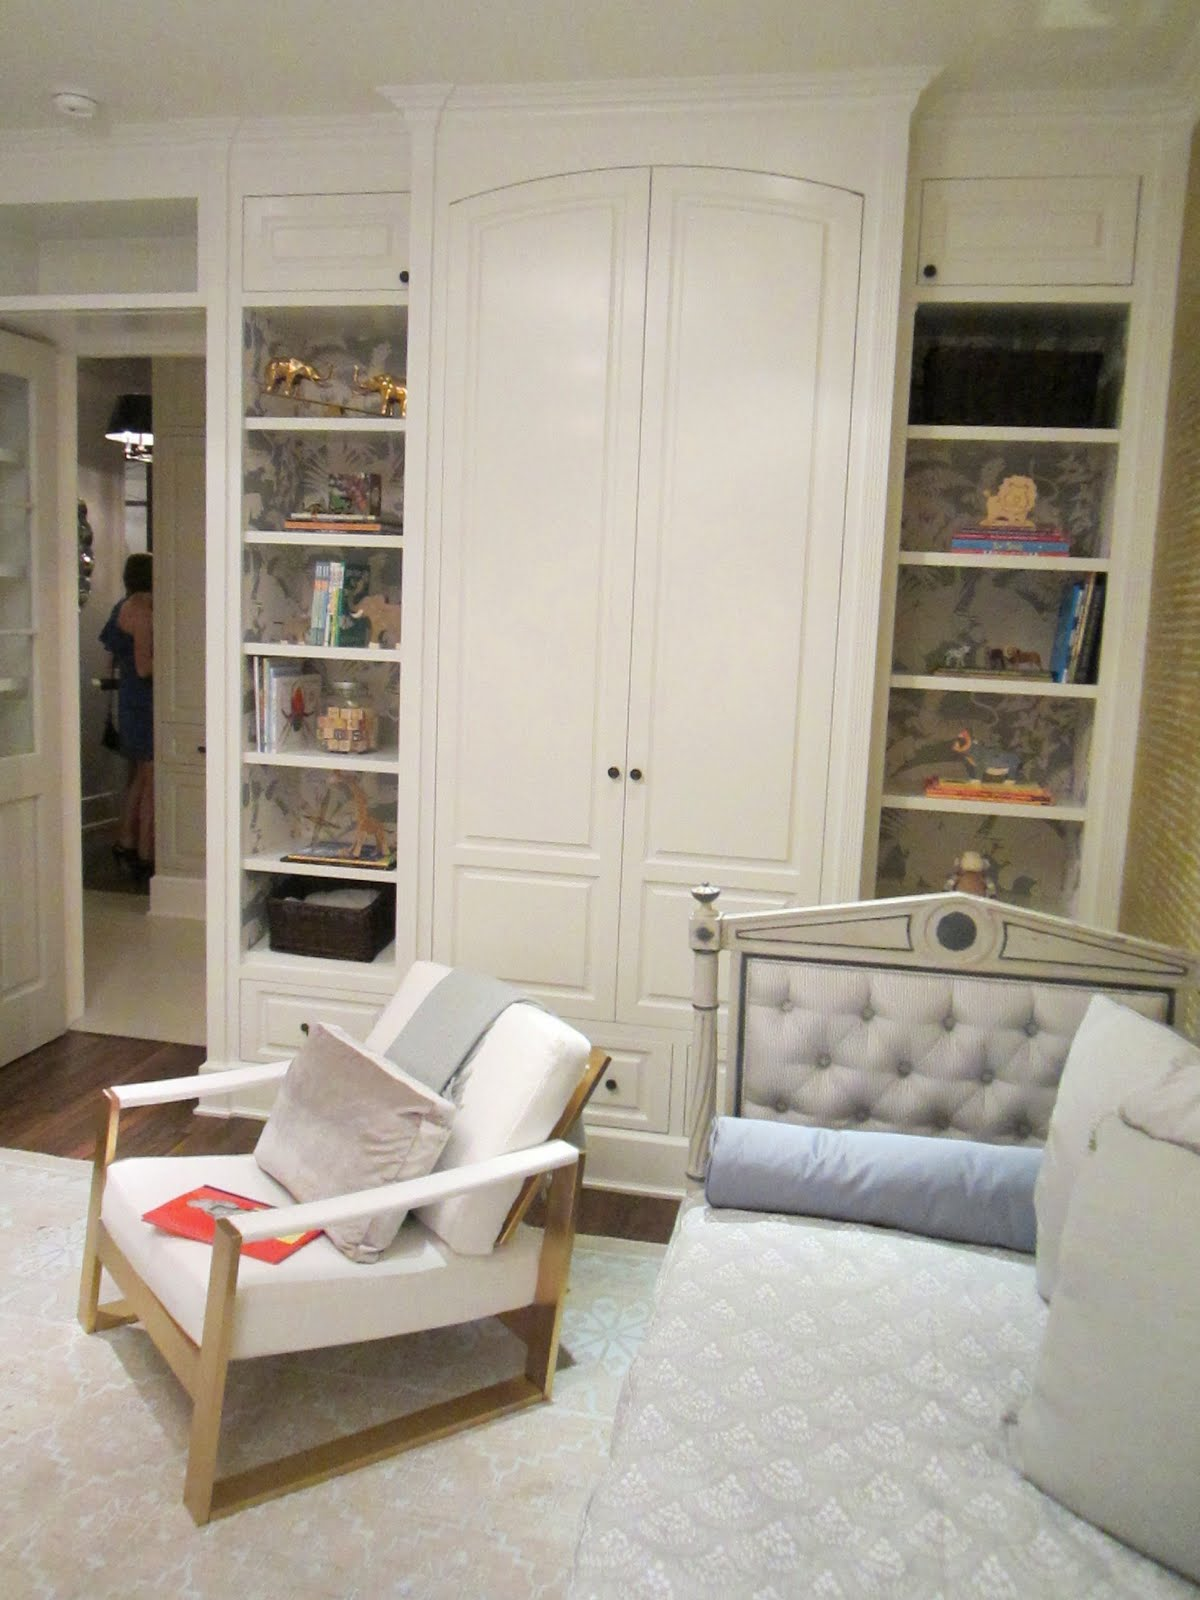 Built In Bookshelves And Cabinets In The Baby Room In The Windsor House,  The Bookshelves